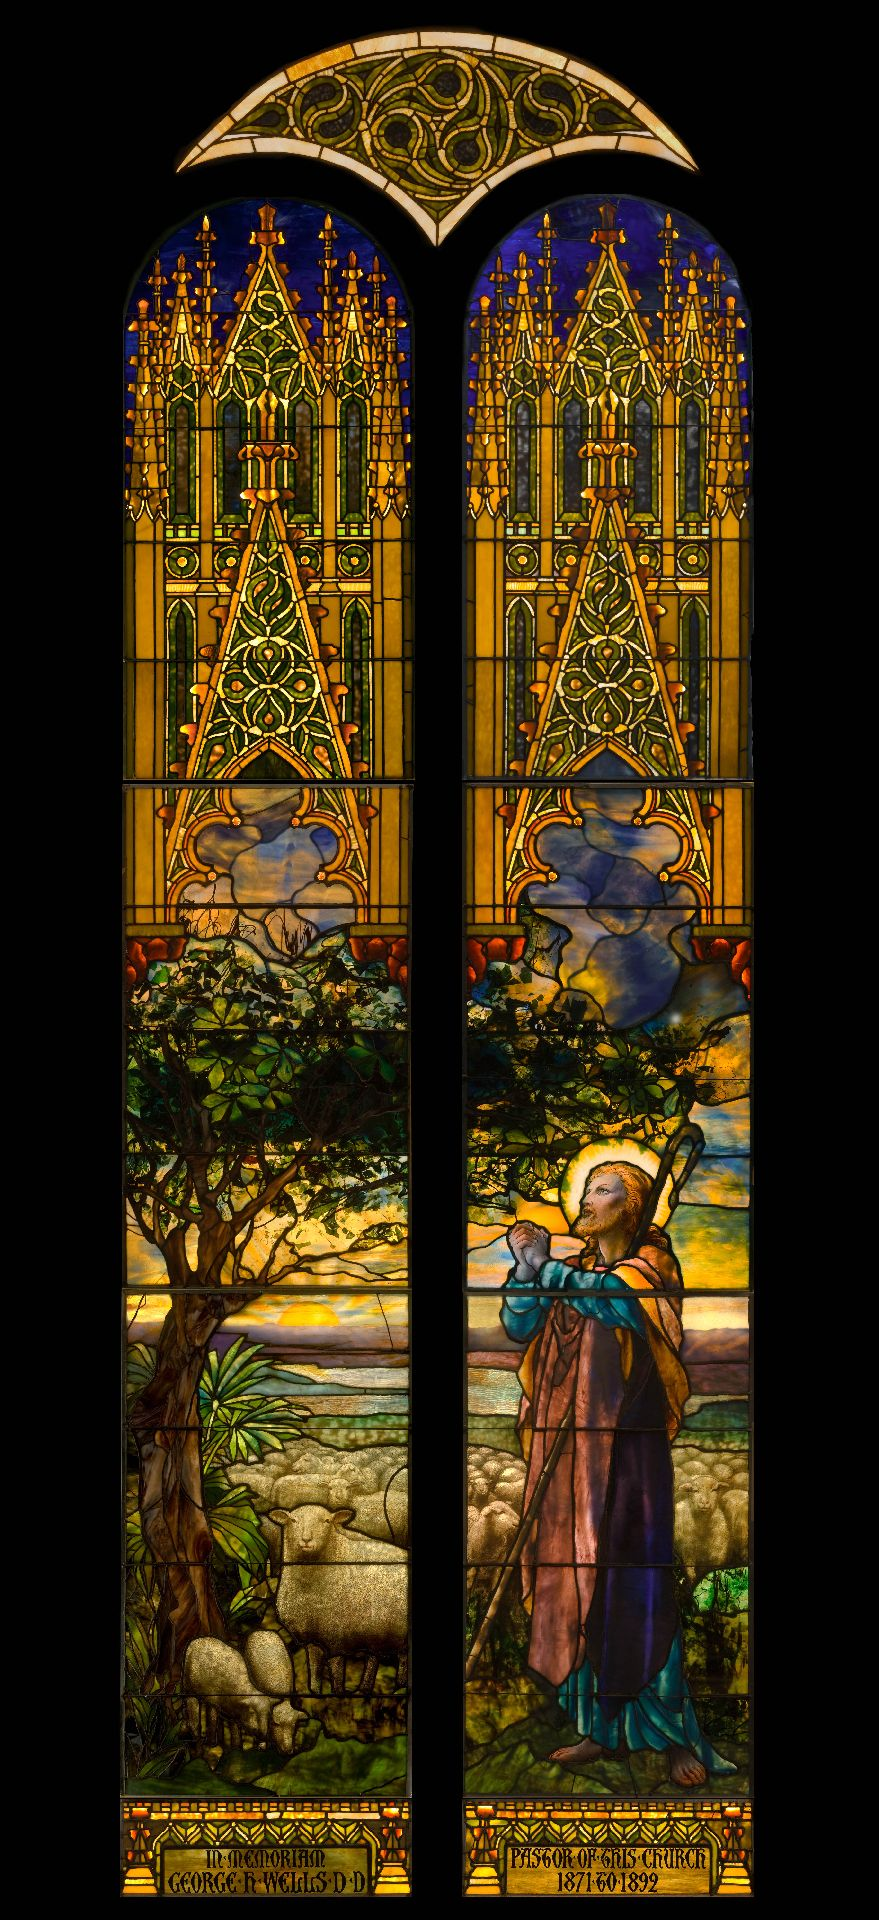 The Good Shepherd,1897. Designed by Frederick Wilson. Leaded-glass windows made by Tiffany Glass and Decorating Company, New York.